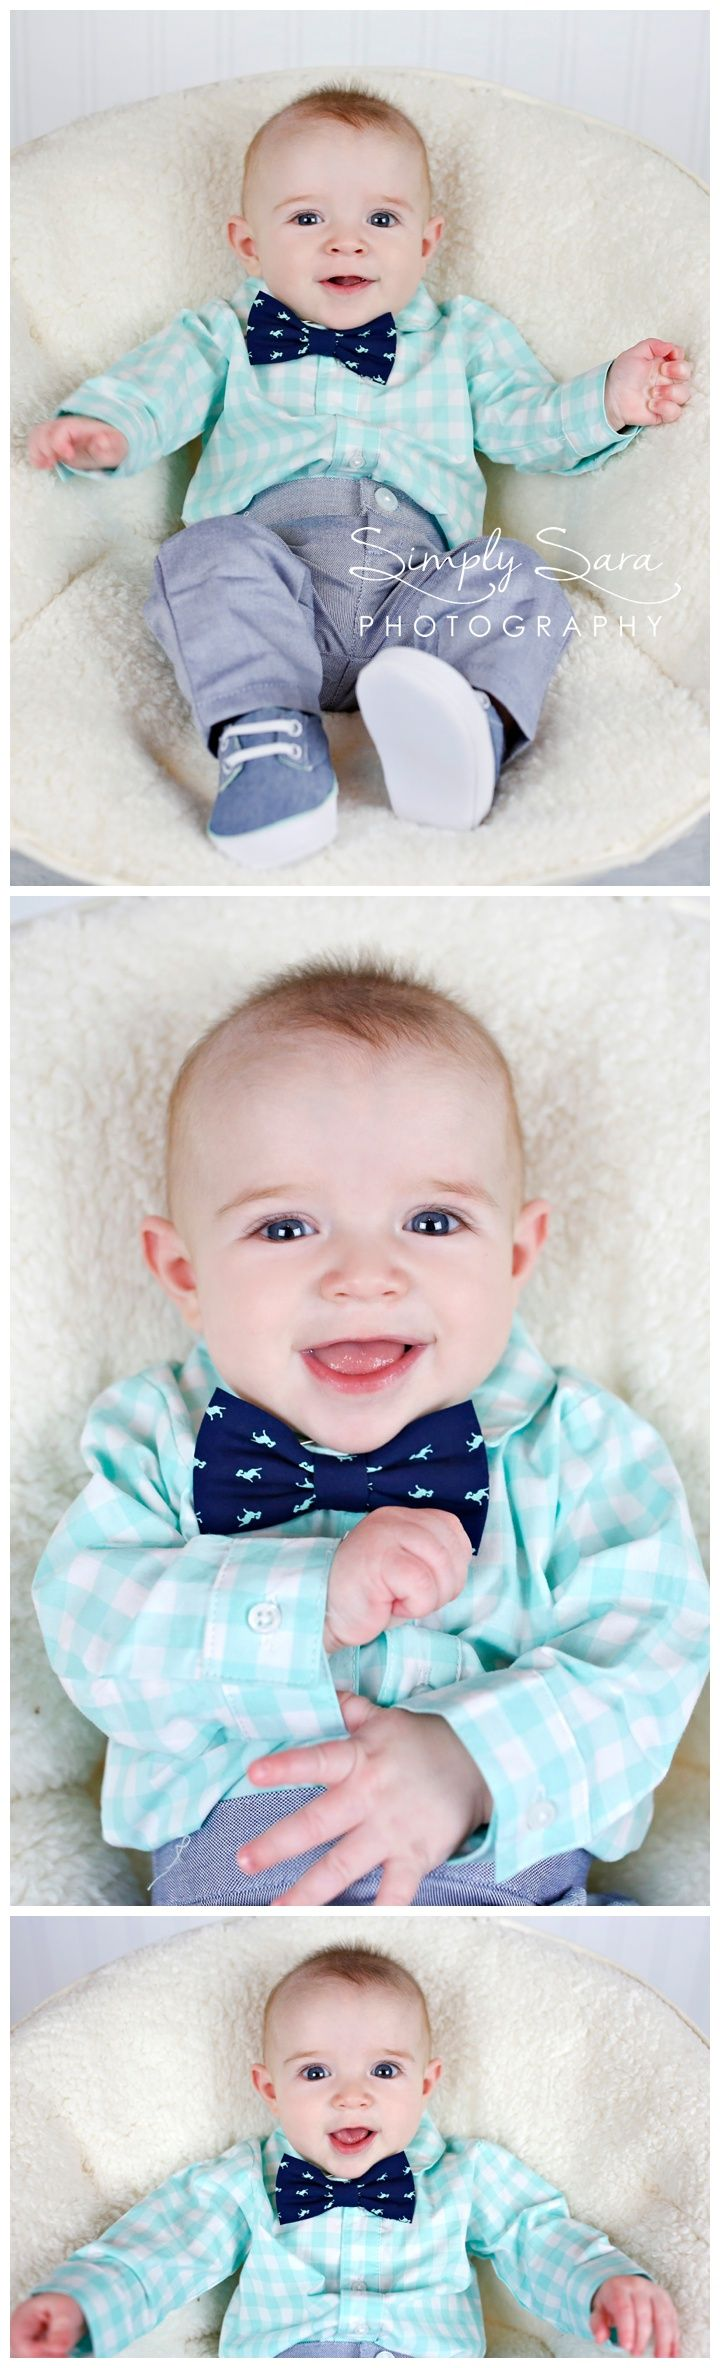 Indoor Photo Ideas Poses 4 Month Old Baby Boy Bow Tie